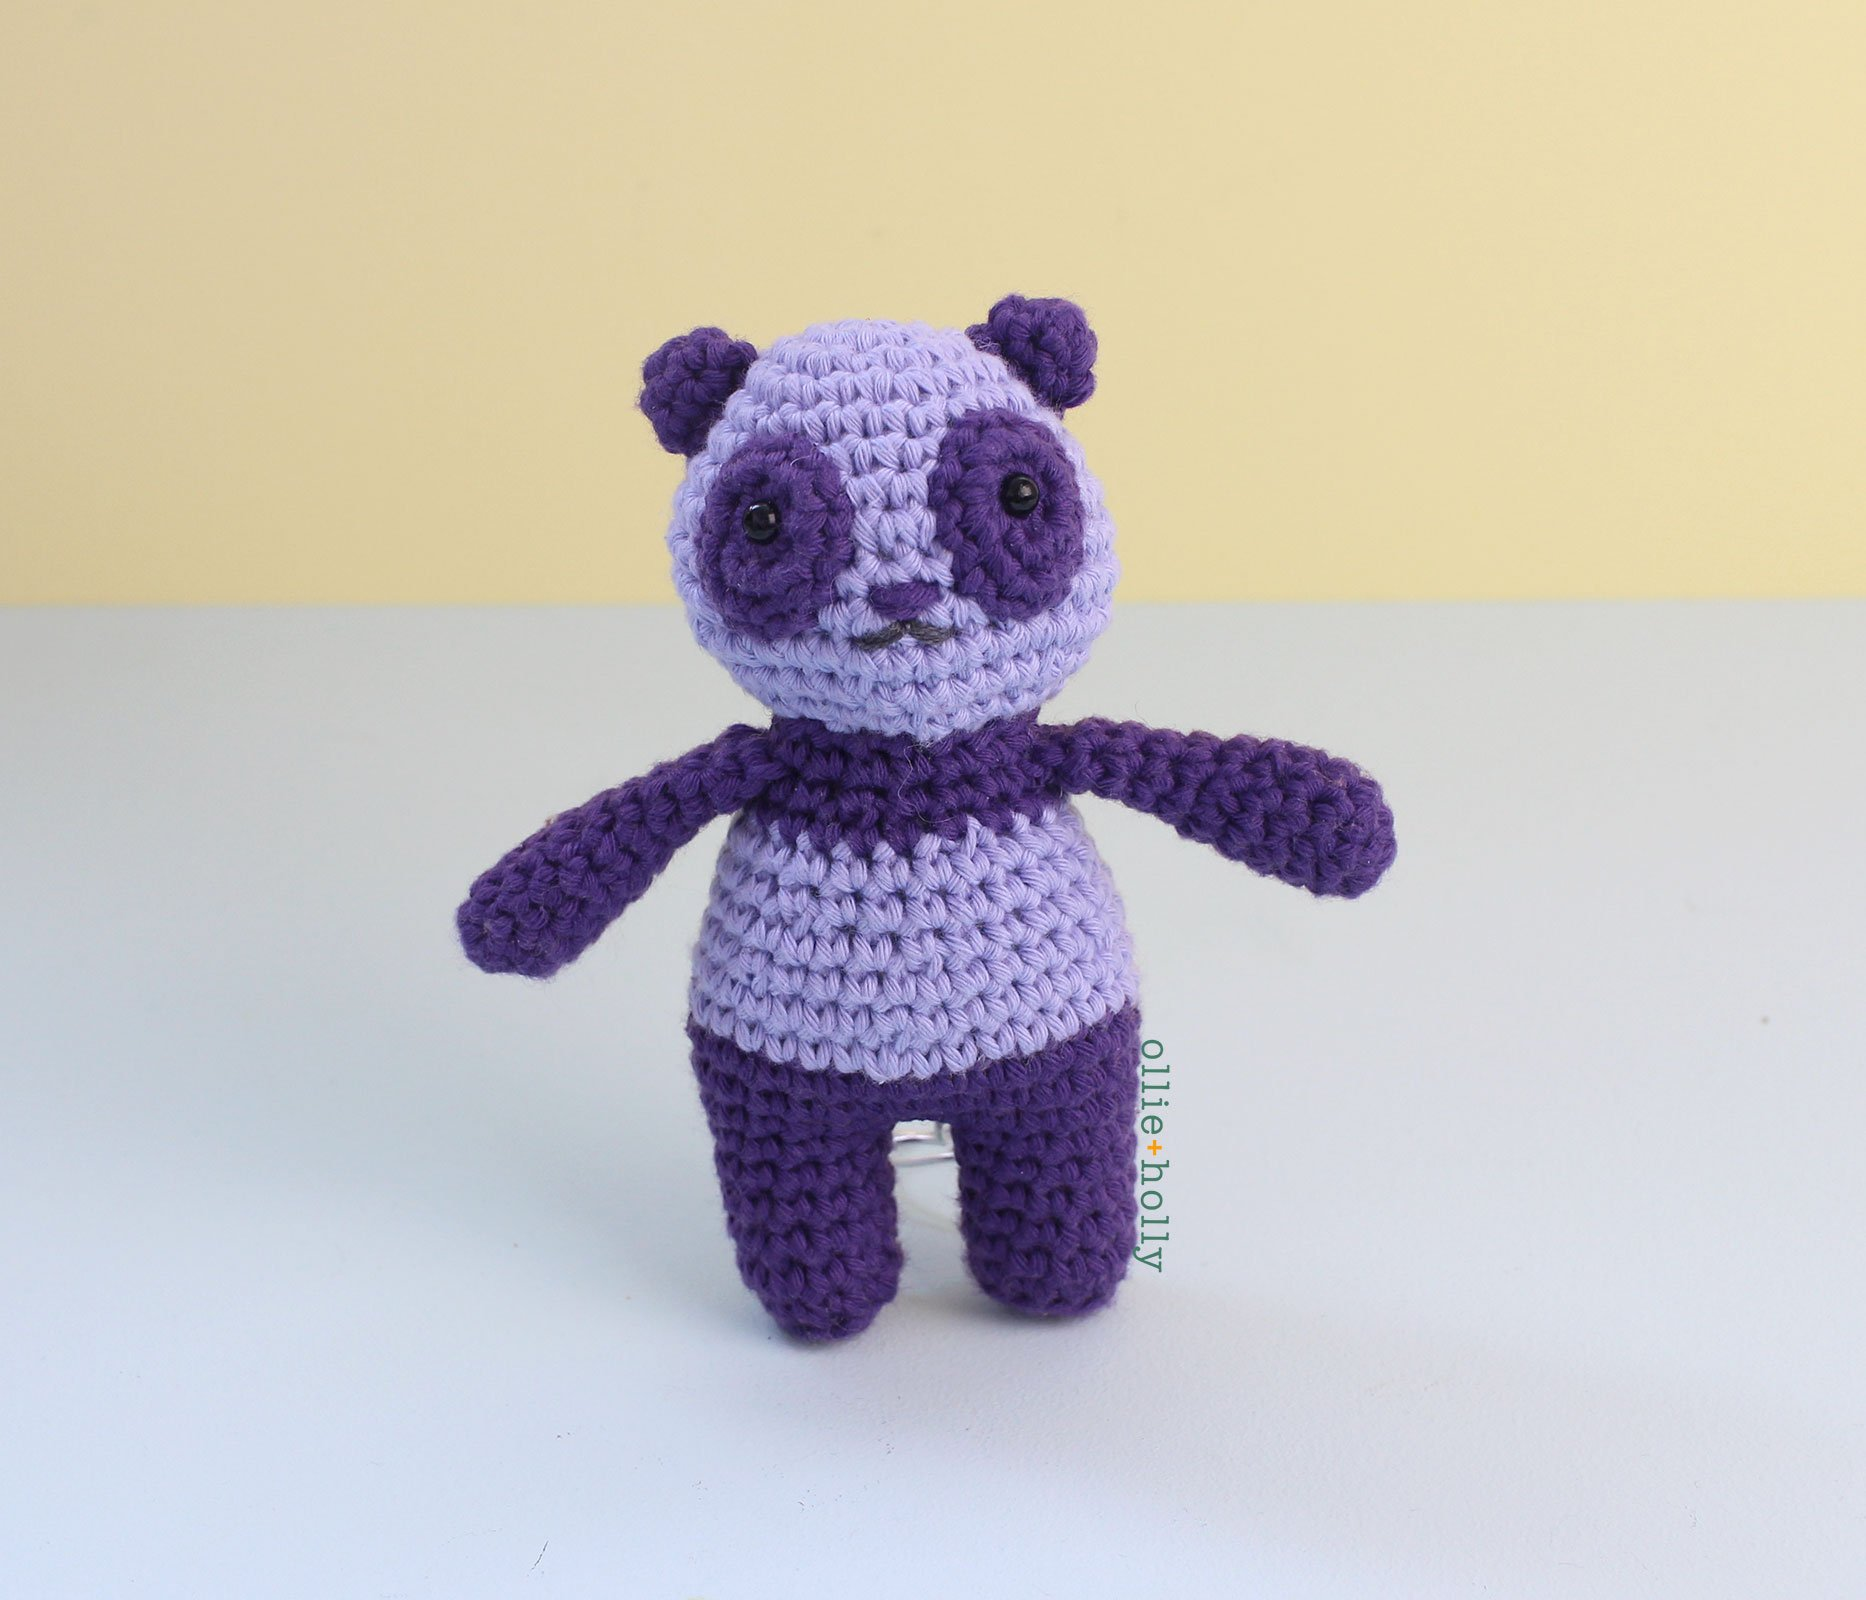 Panda Amigurumi - Free Crochet Pattern | Craft Passion – Page 2 of ... | 1600x1866